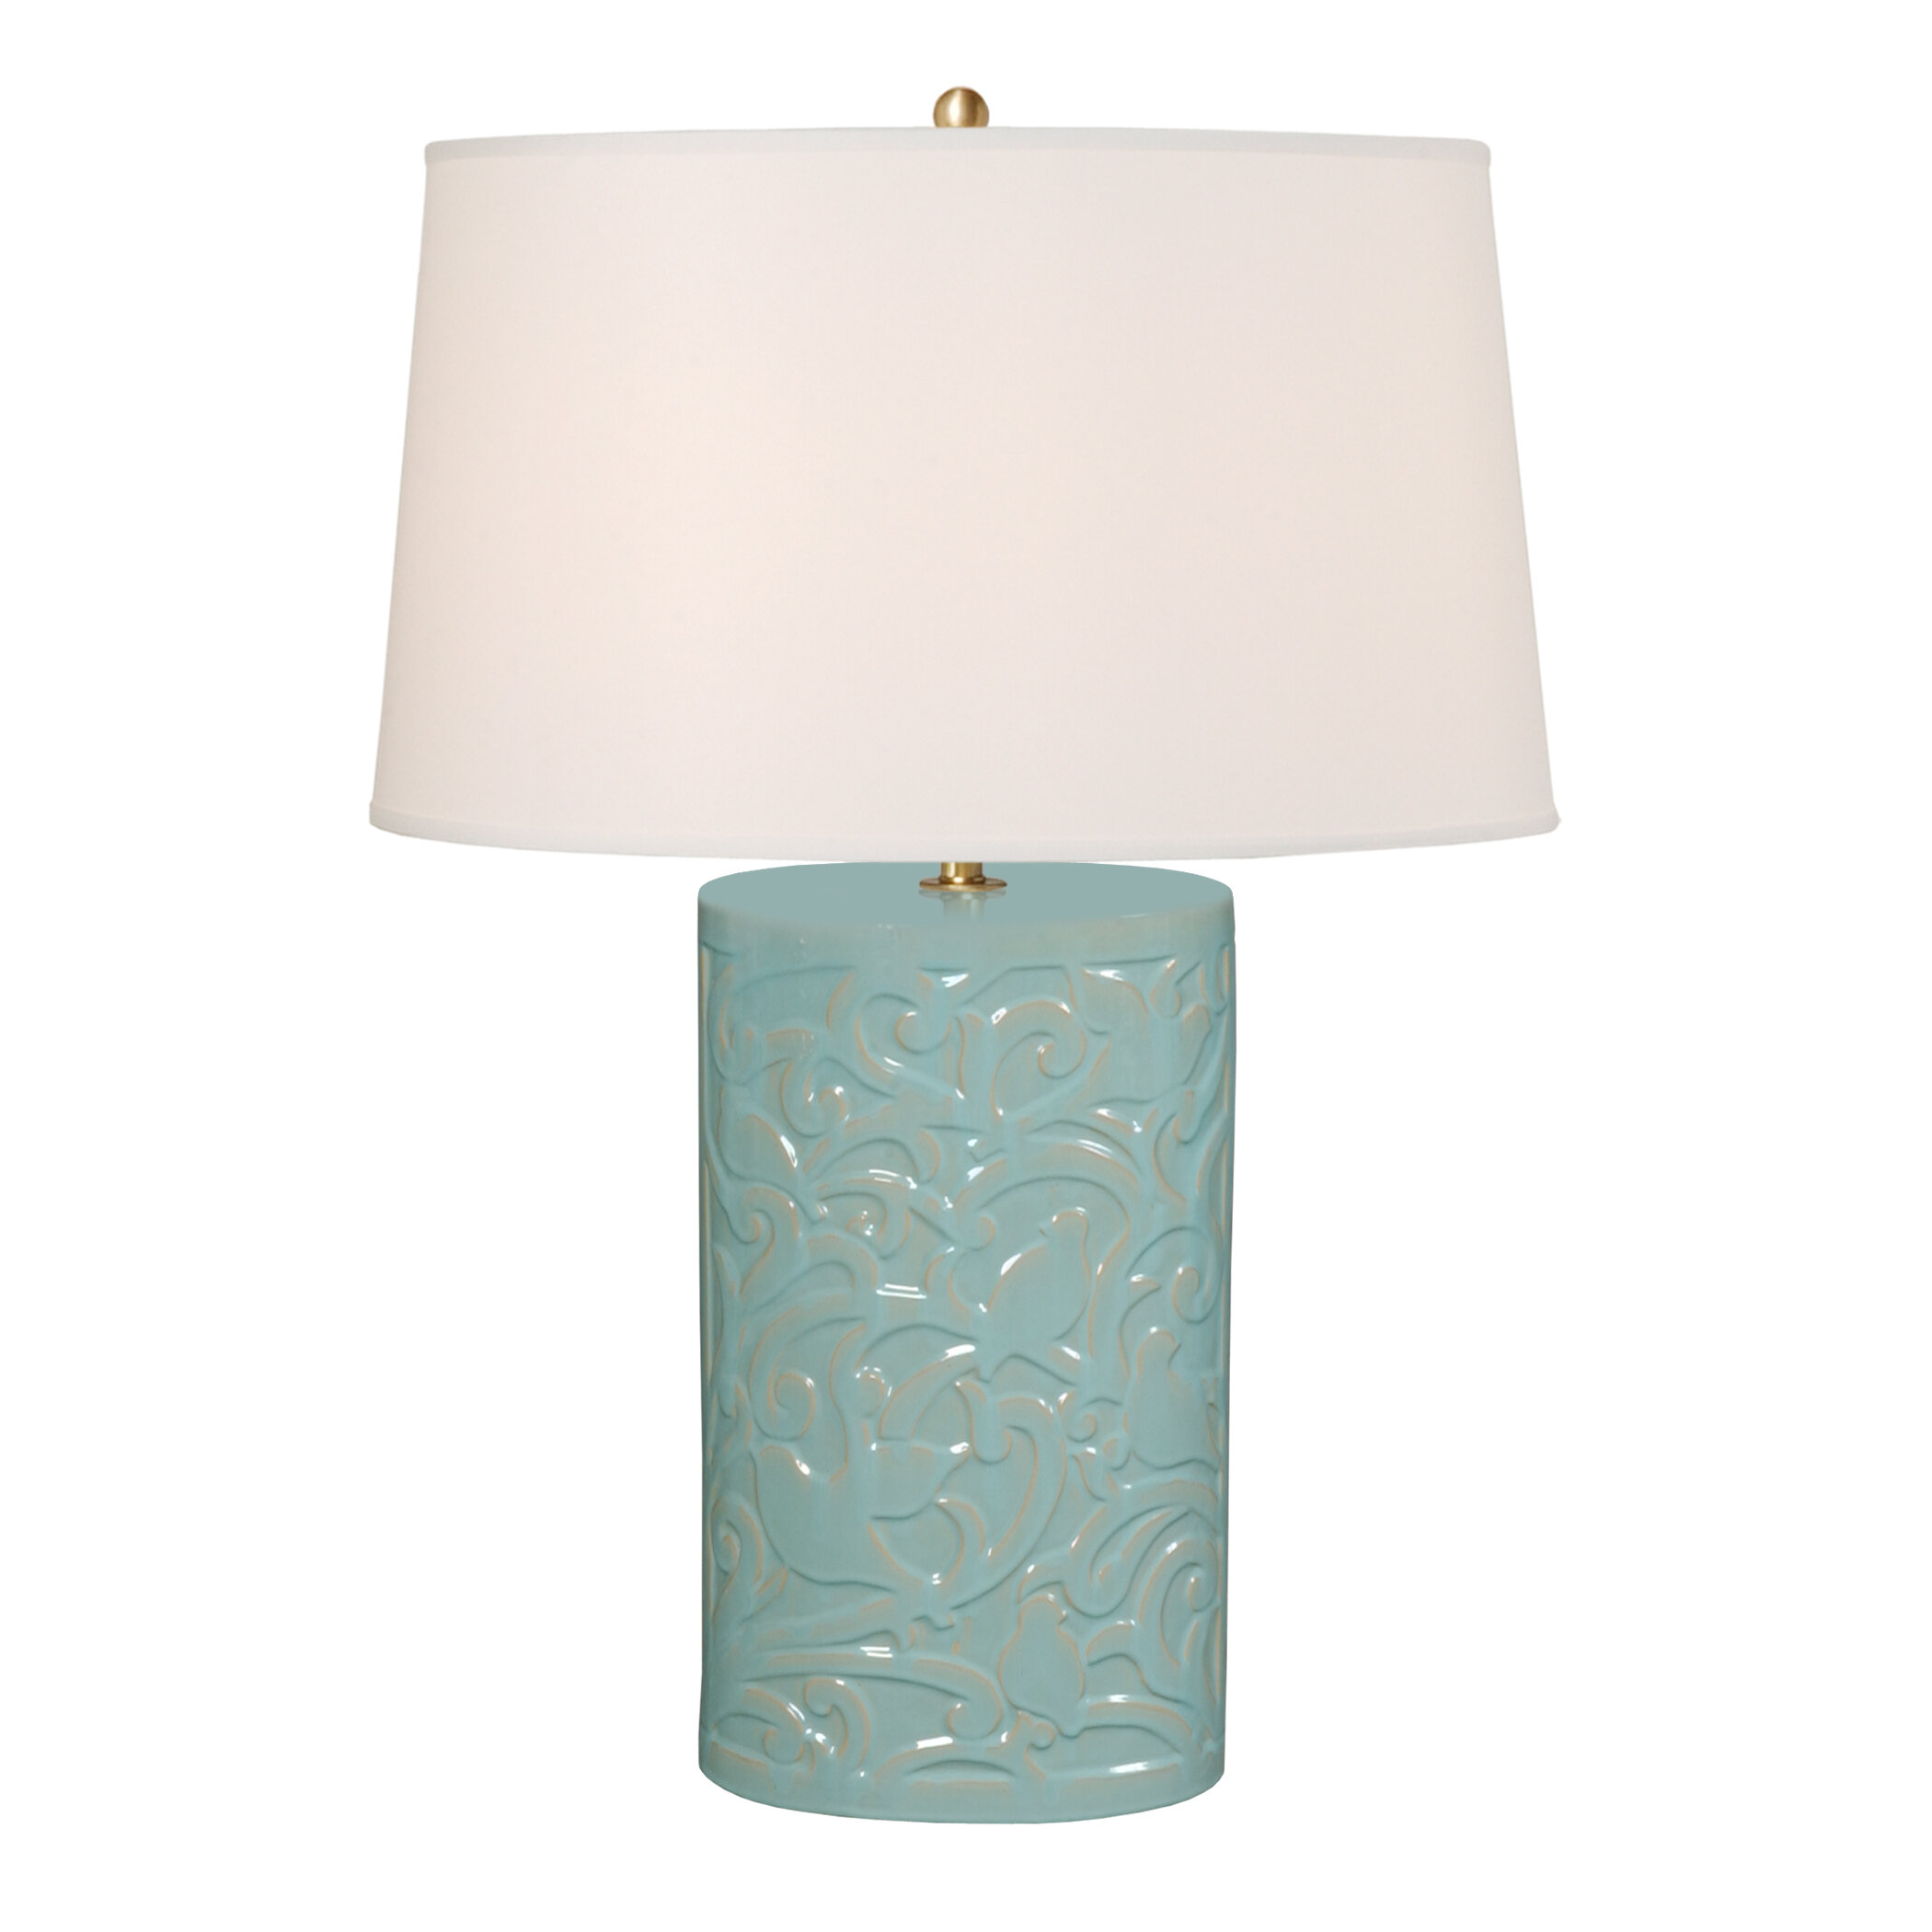 emissary bird lattice 31 table lamp wayfair